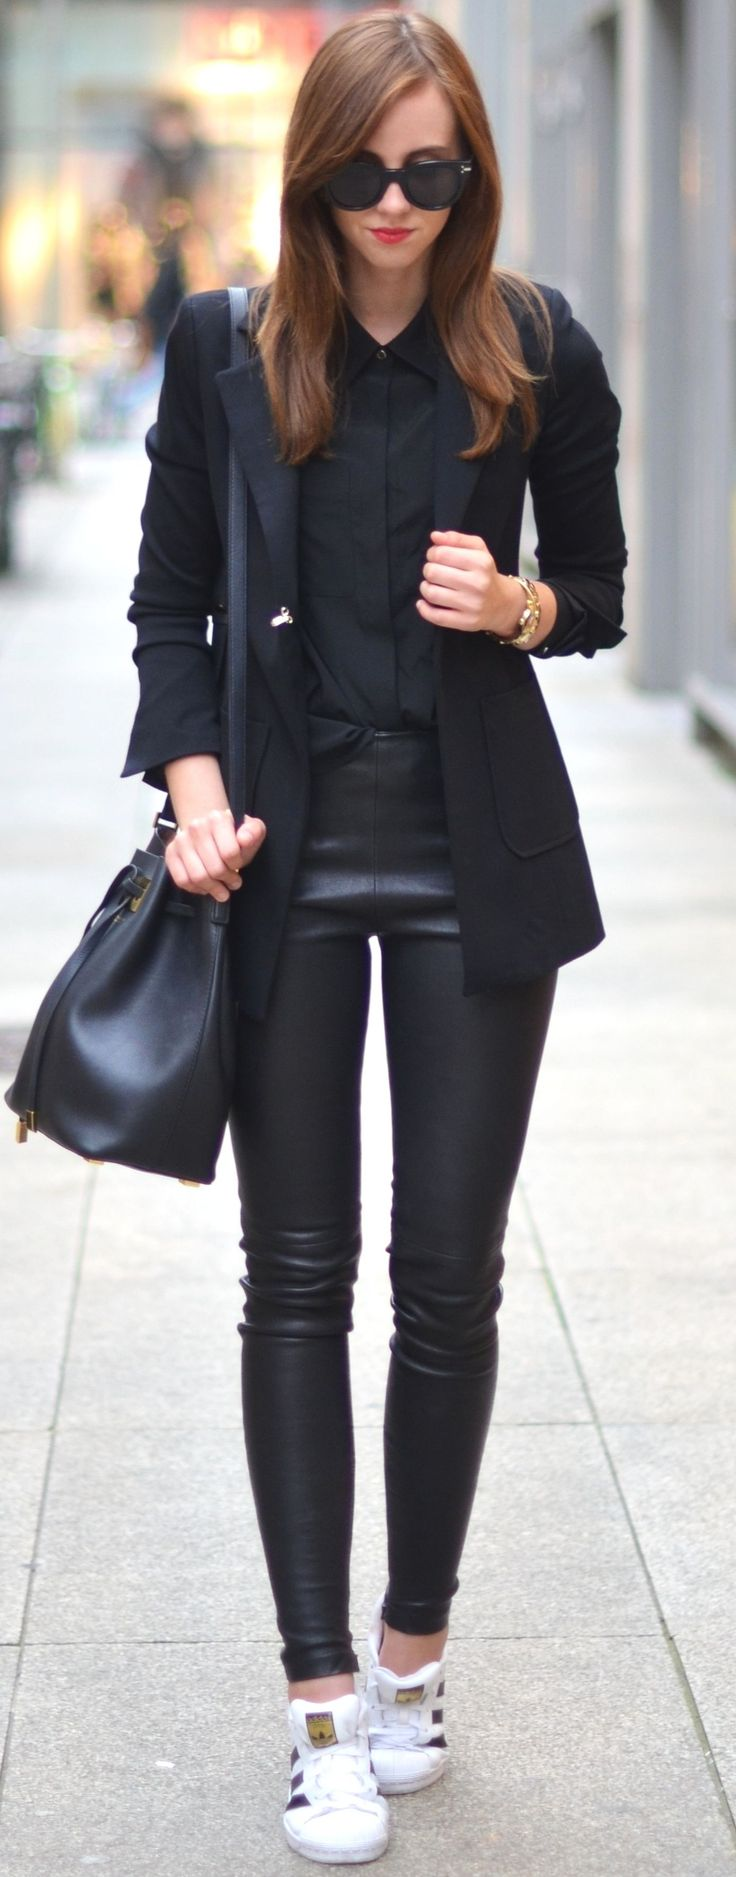 White Sneakers And Total Black Fall Streetsyle Inspo by Vogue Haus